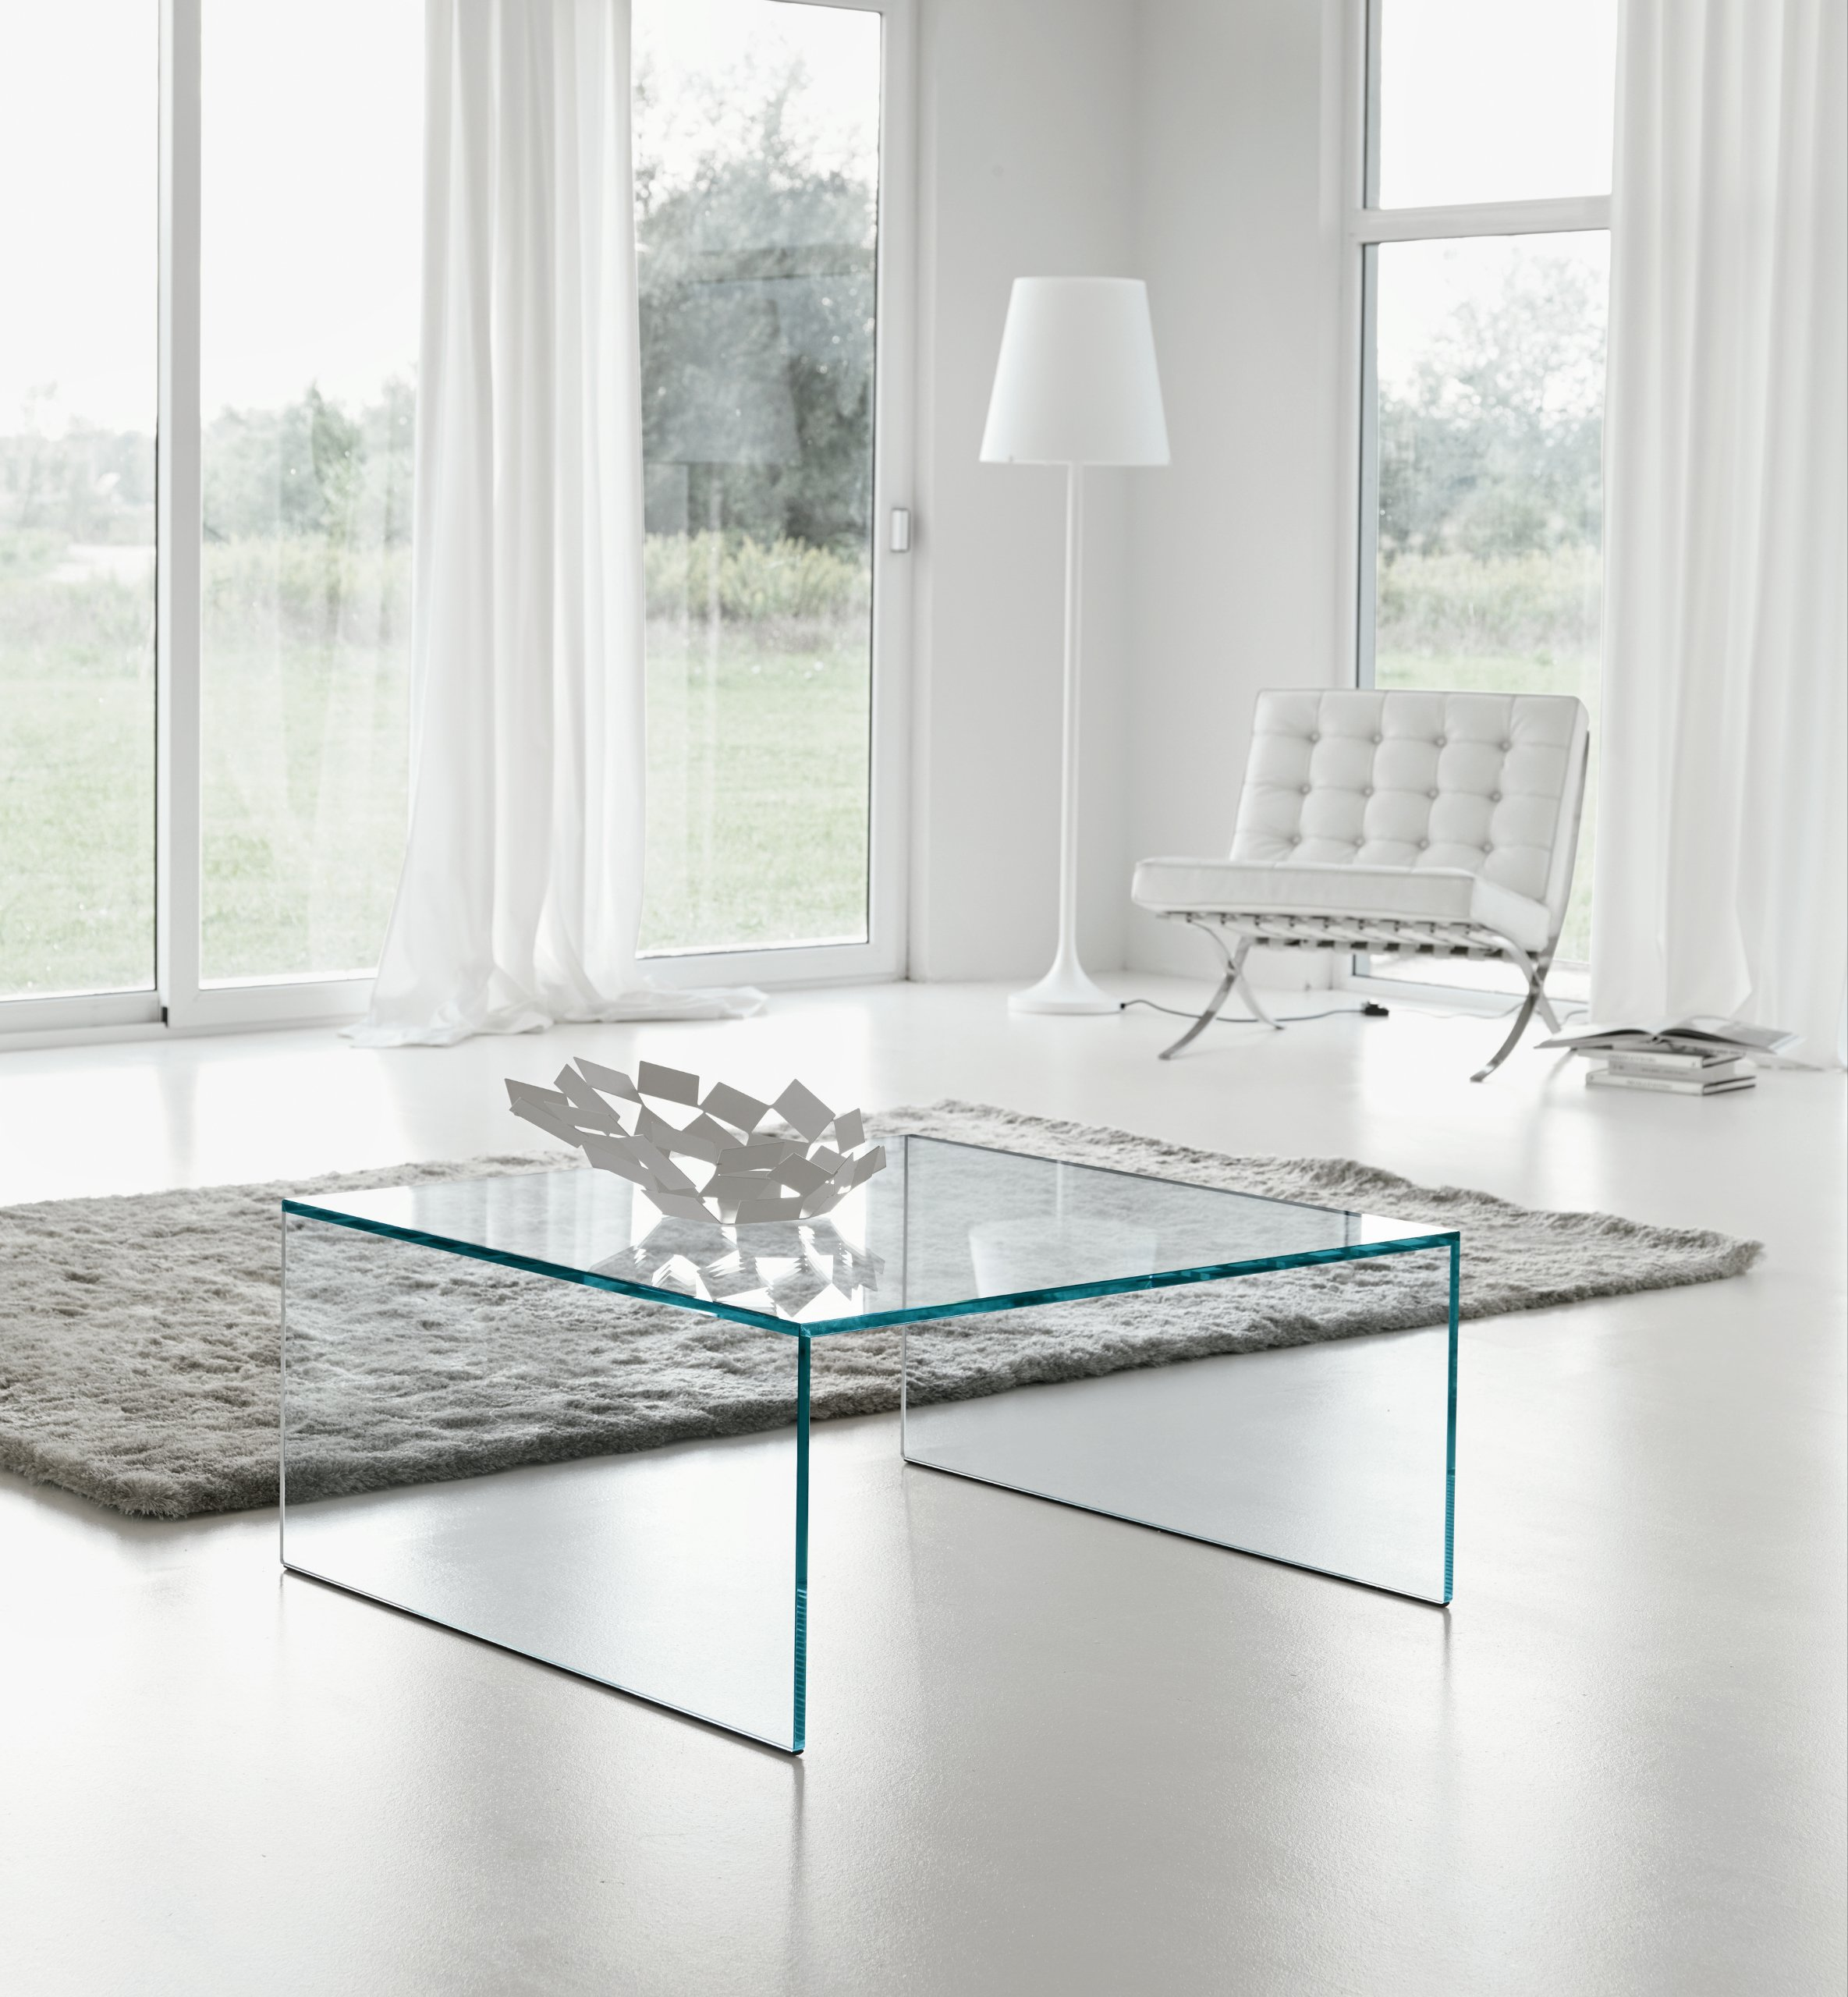 Table basse en verre eden by t d tonelli design - Table basse verre design ...